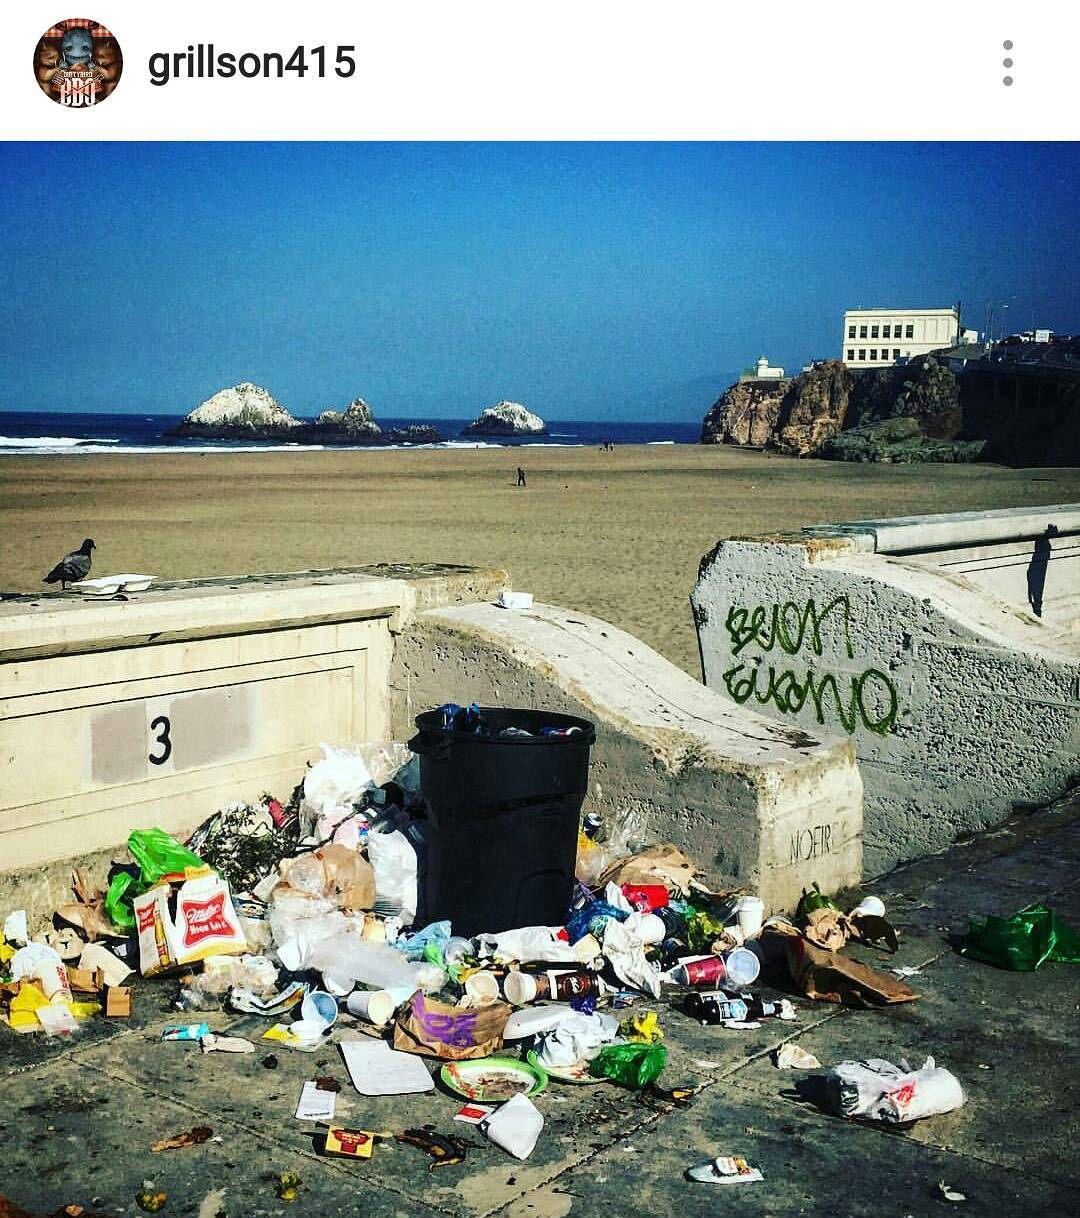 "@goldengatenps it's time to come up with a solution to the unacceptable trash issue at Ocean Beach. It's clear that this ""pilot"" program isn't working when someone brings a trash can to the beach. #endthisnow so we can have a #wastefreeOB for everyone..."